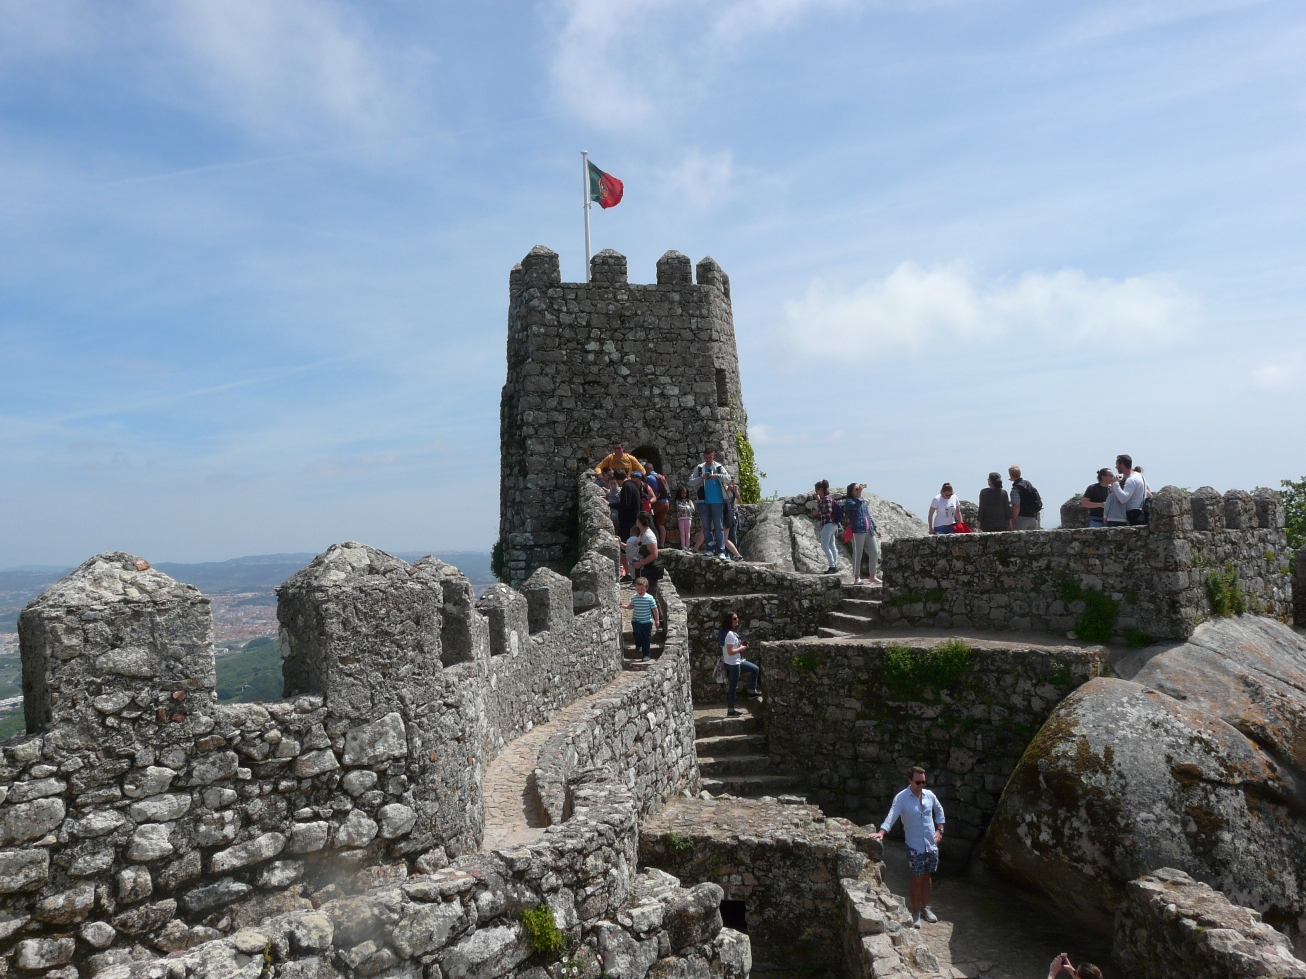 Picture 7, Castelo dos Mouros, Sintra, Portugal